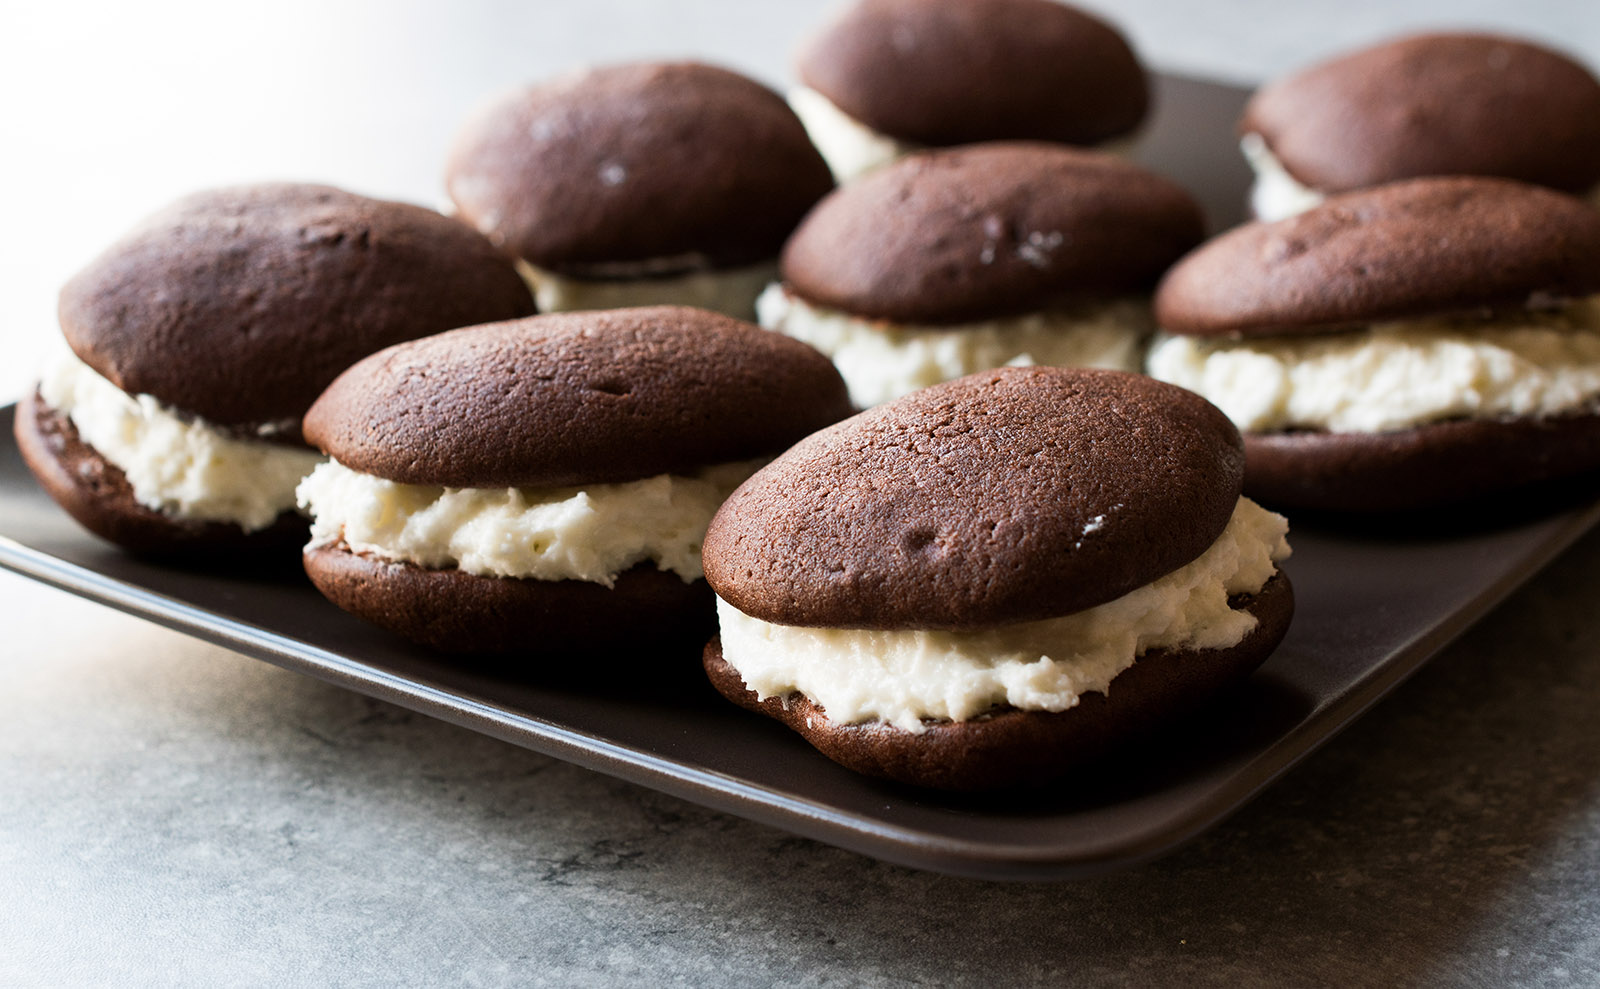 cream-filled whoopie pies on a wooden table